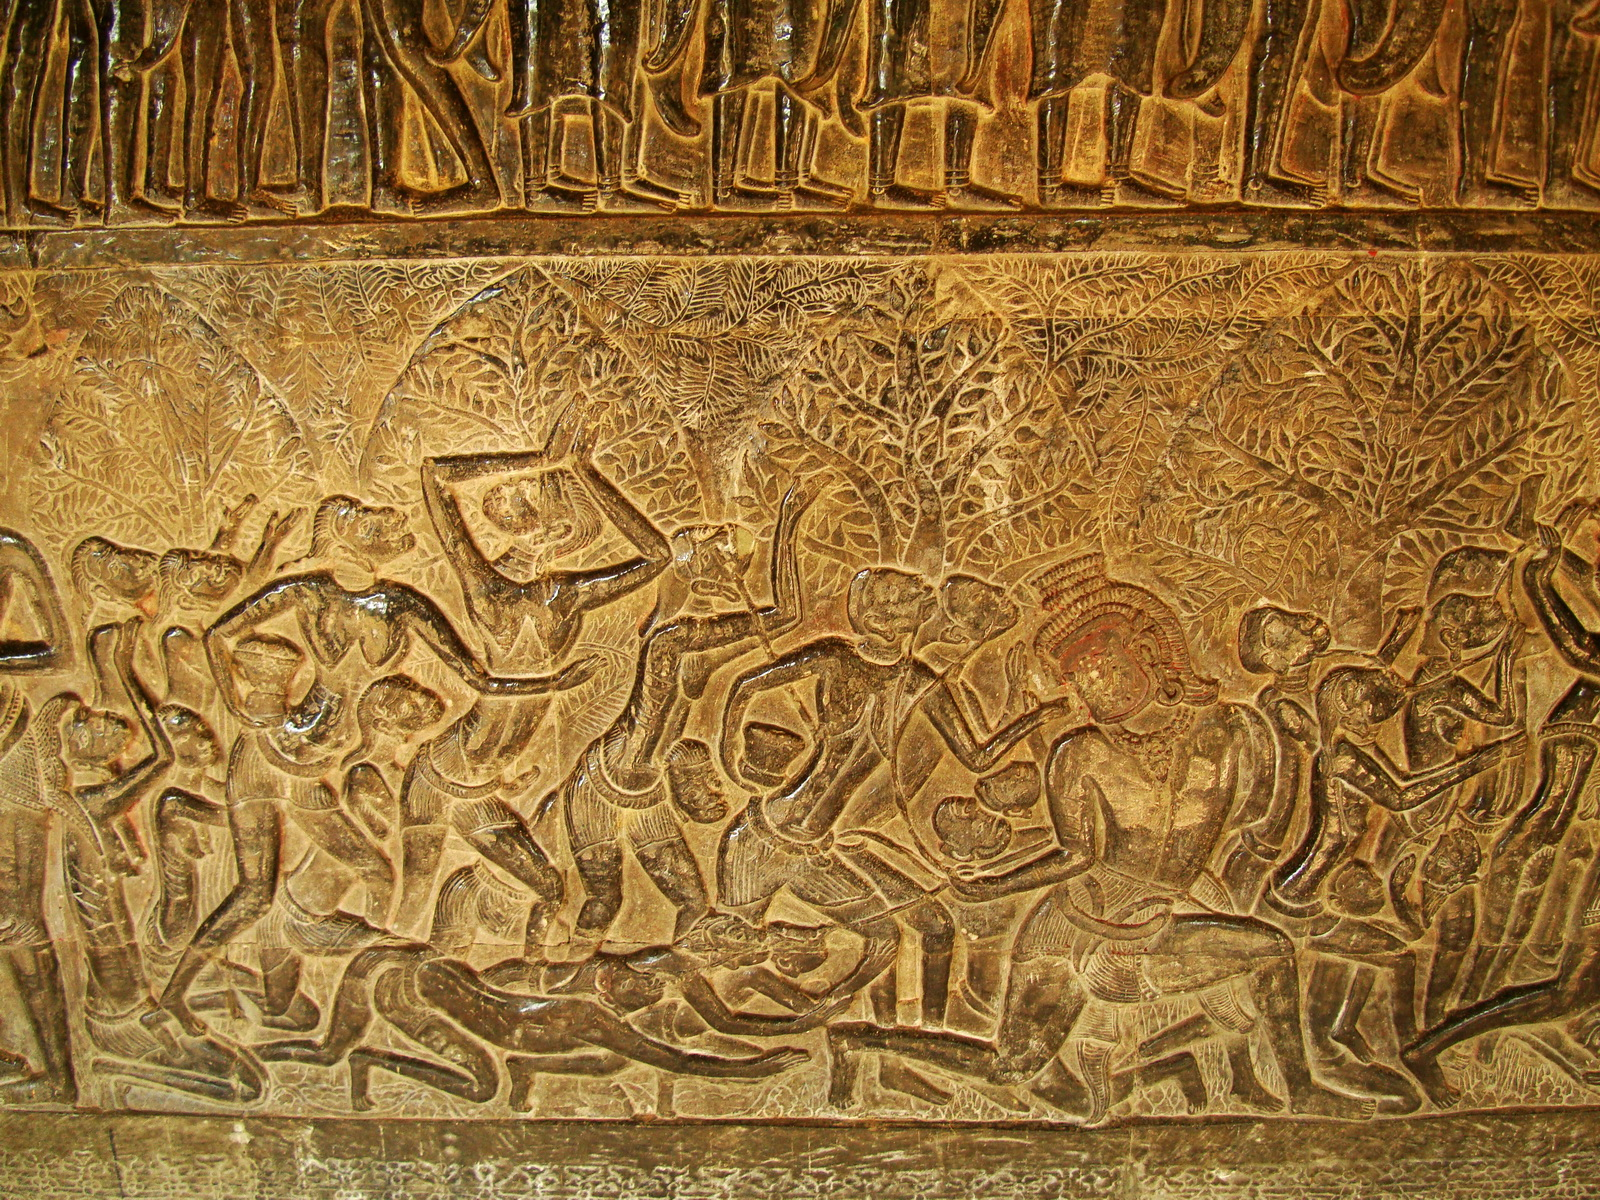 Angkor Wat Bas relief S Gallery E Wing Heavens and Hells 09